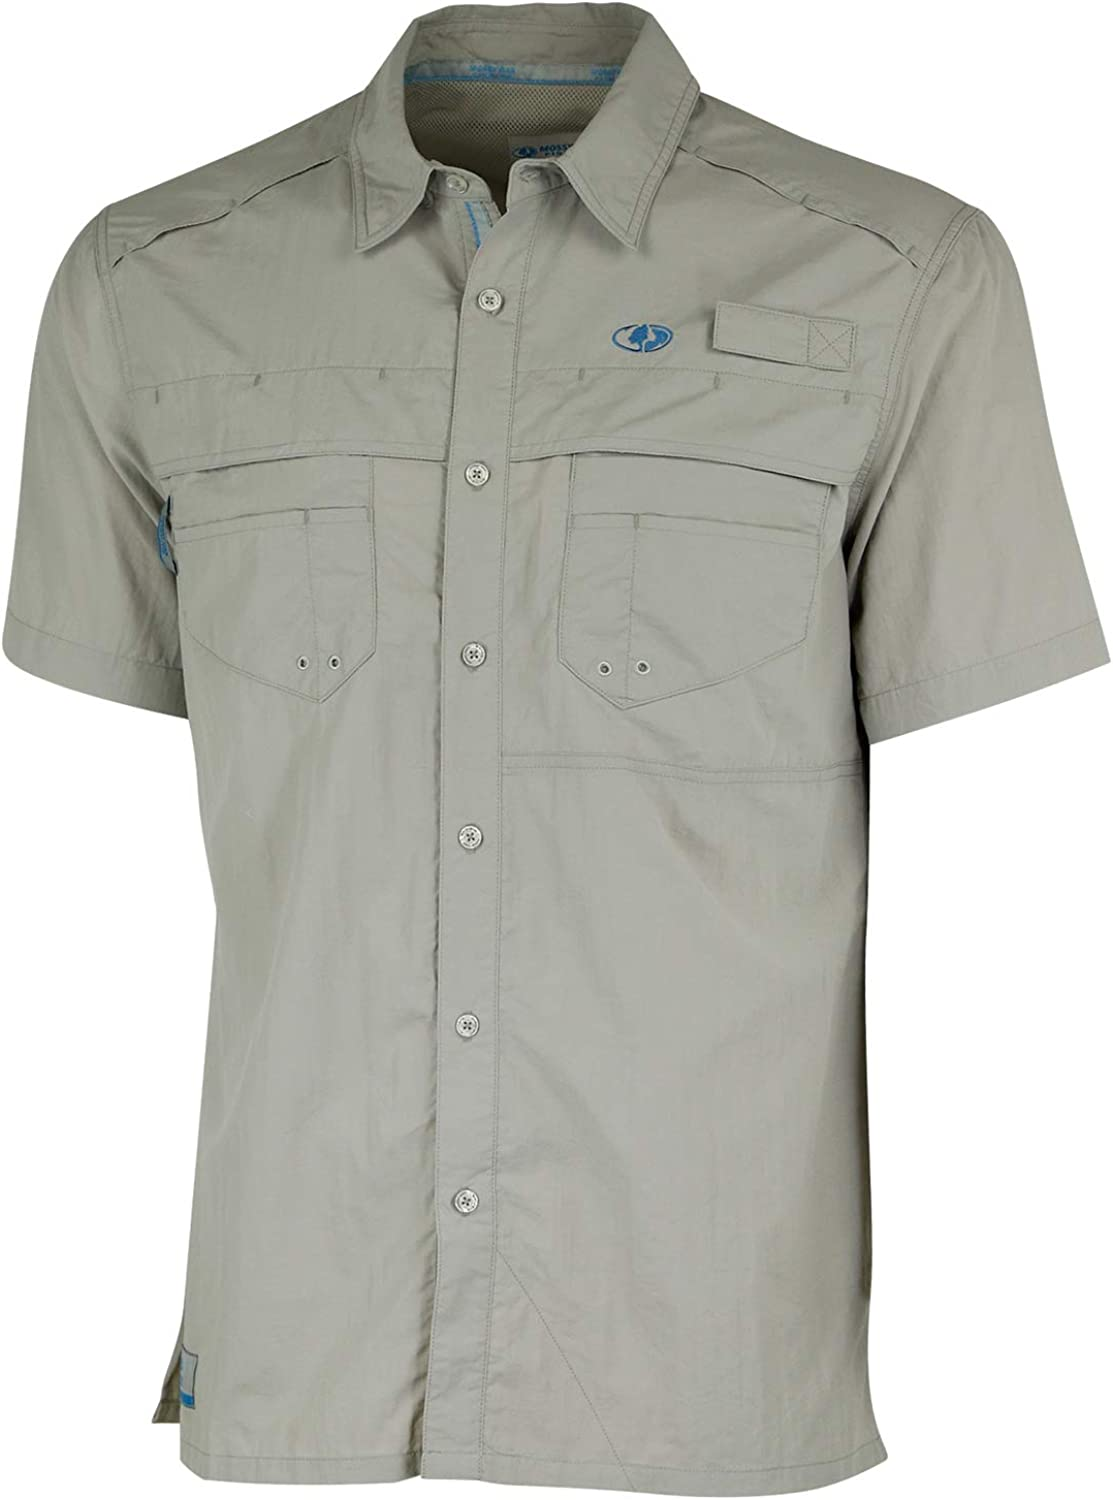 Mossy Oak Fishing Shirts 25% OFF for Men Dry UPF Protect Max 51% OFF Sun Quick with